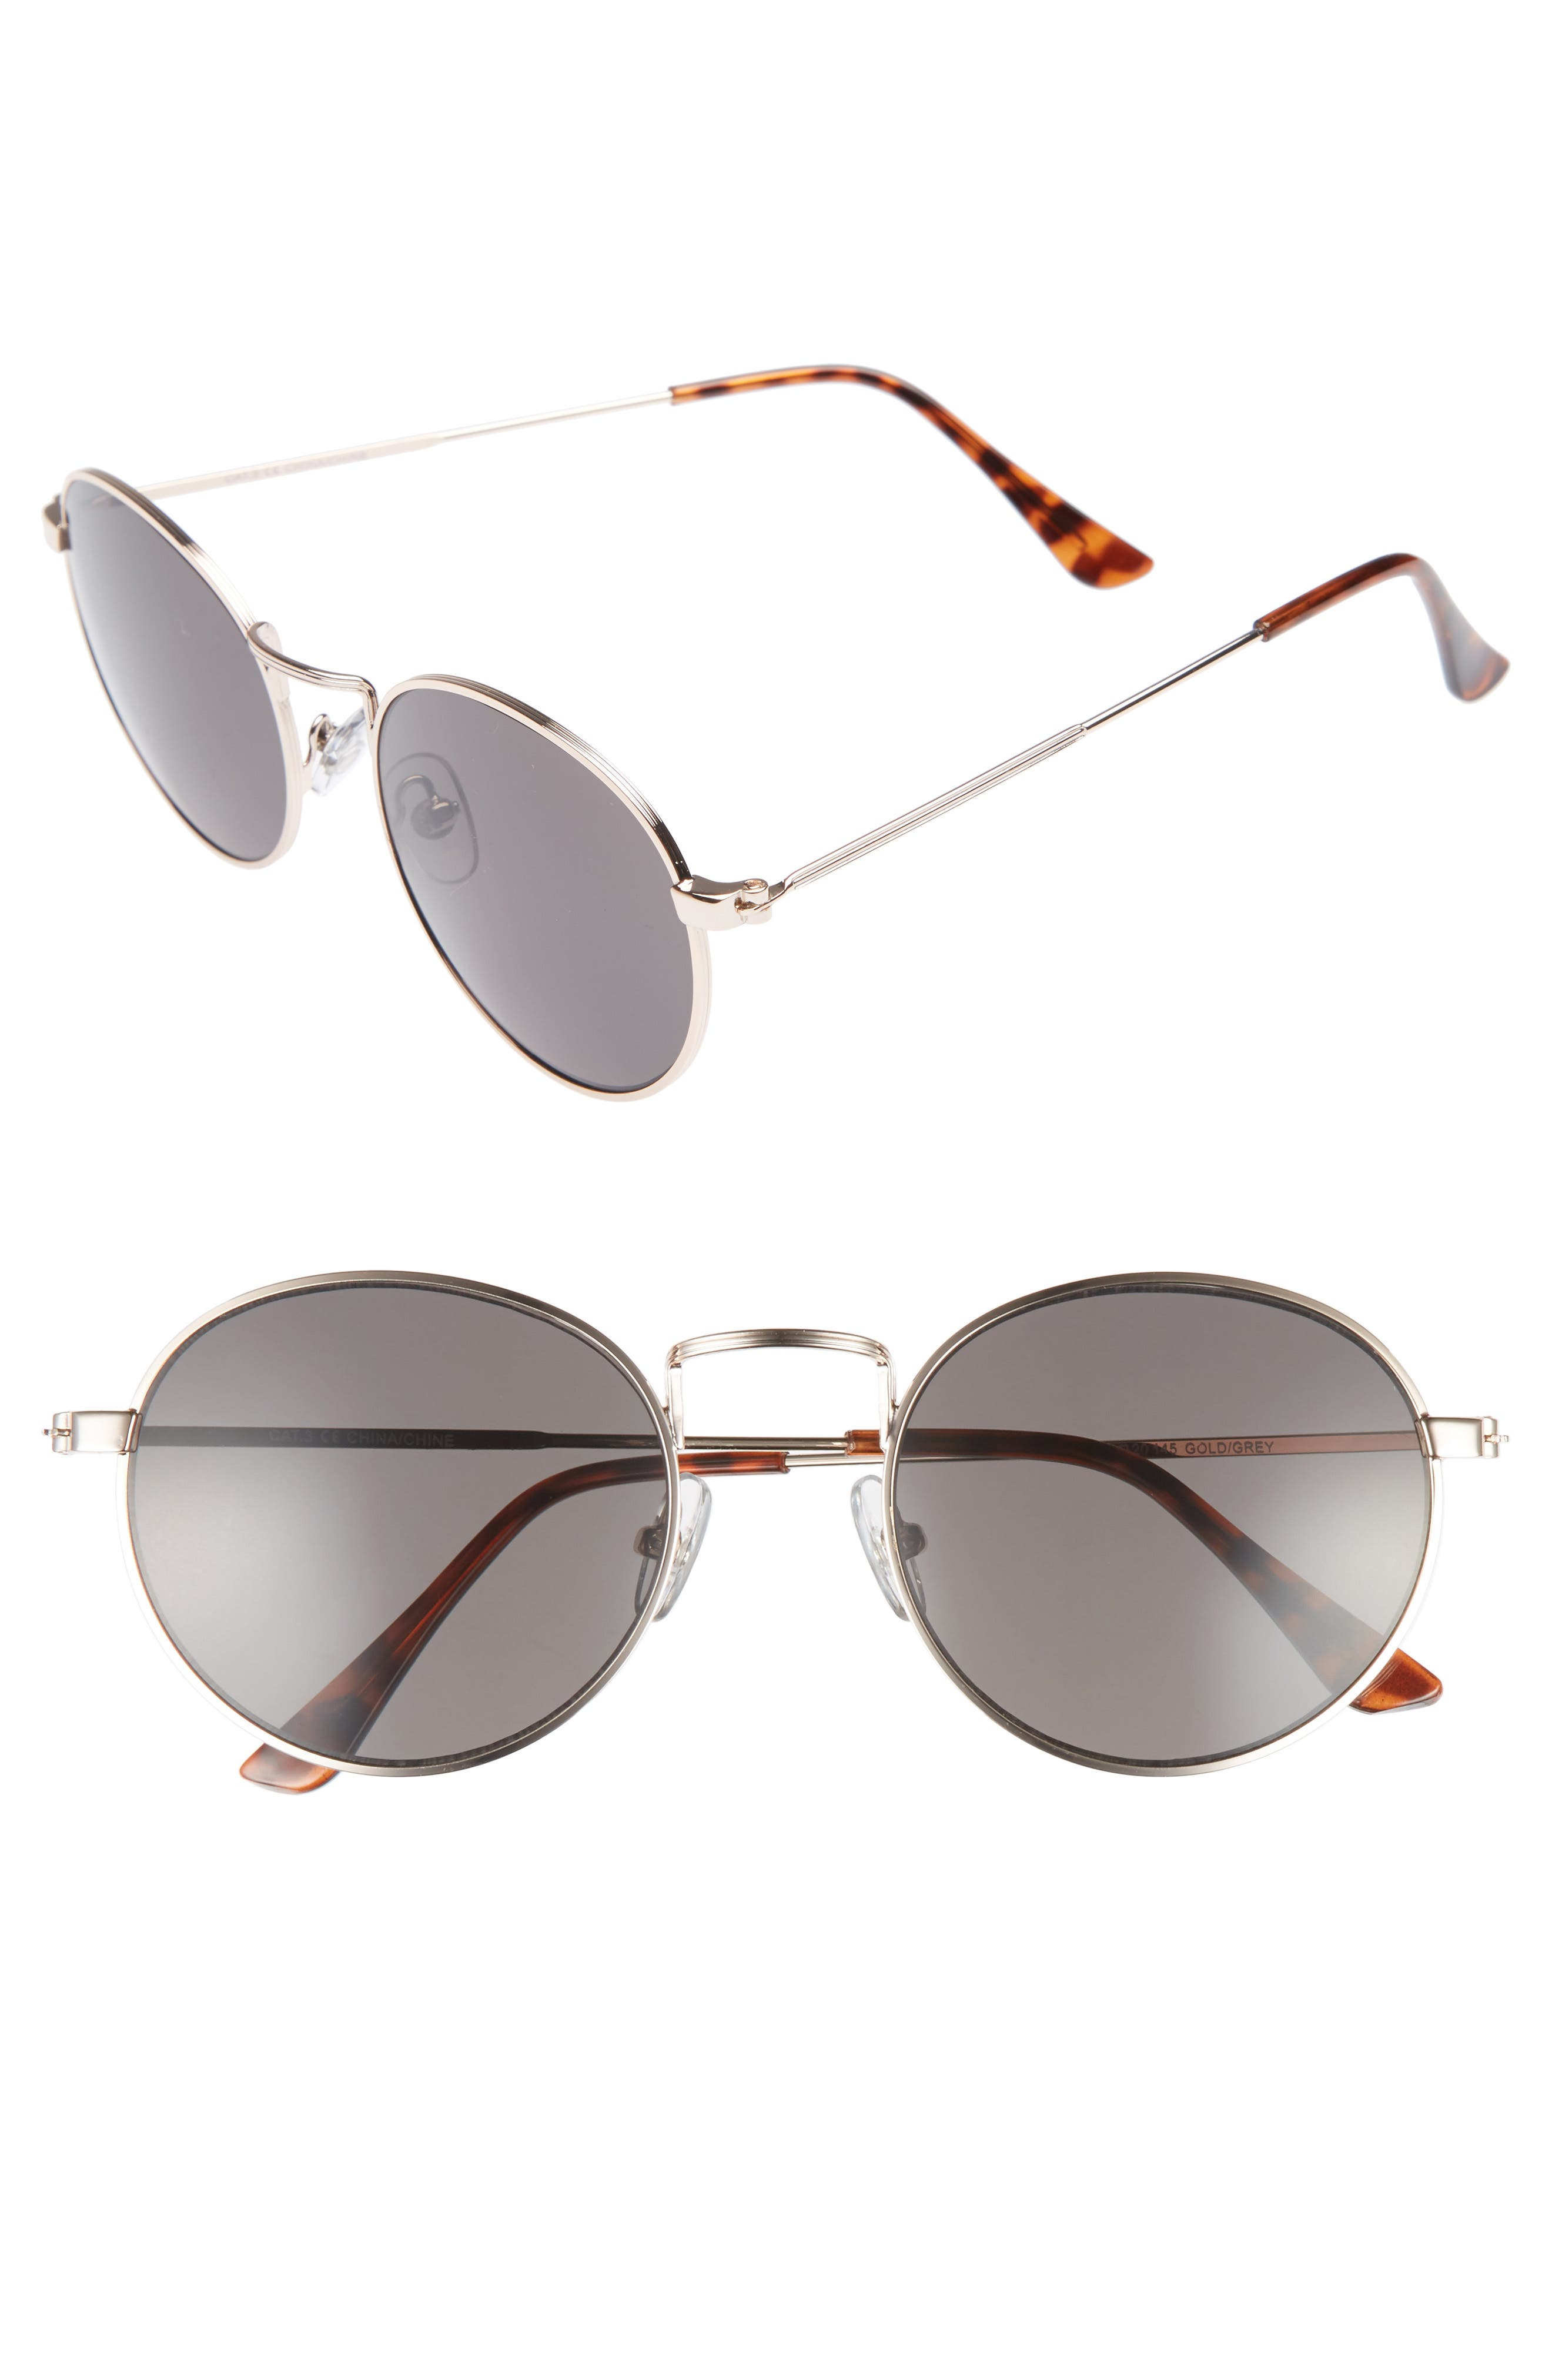 Alternate Image 1 Selected - 1901 Lewis 54mm Round Sunglasses